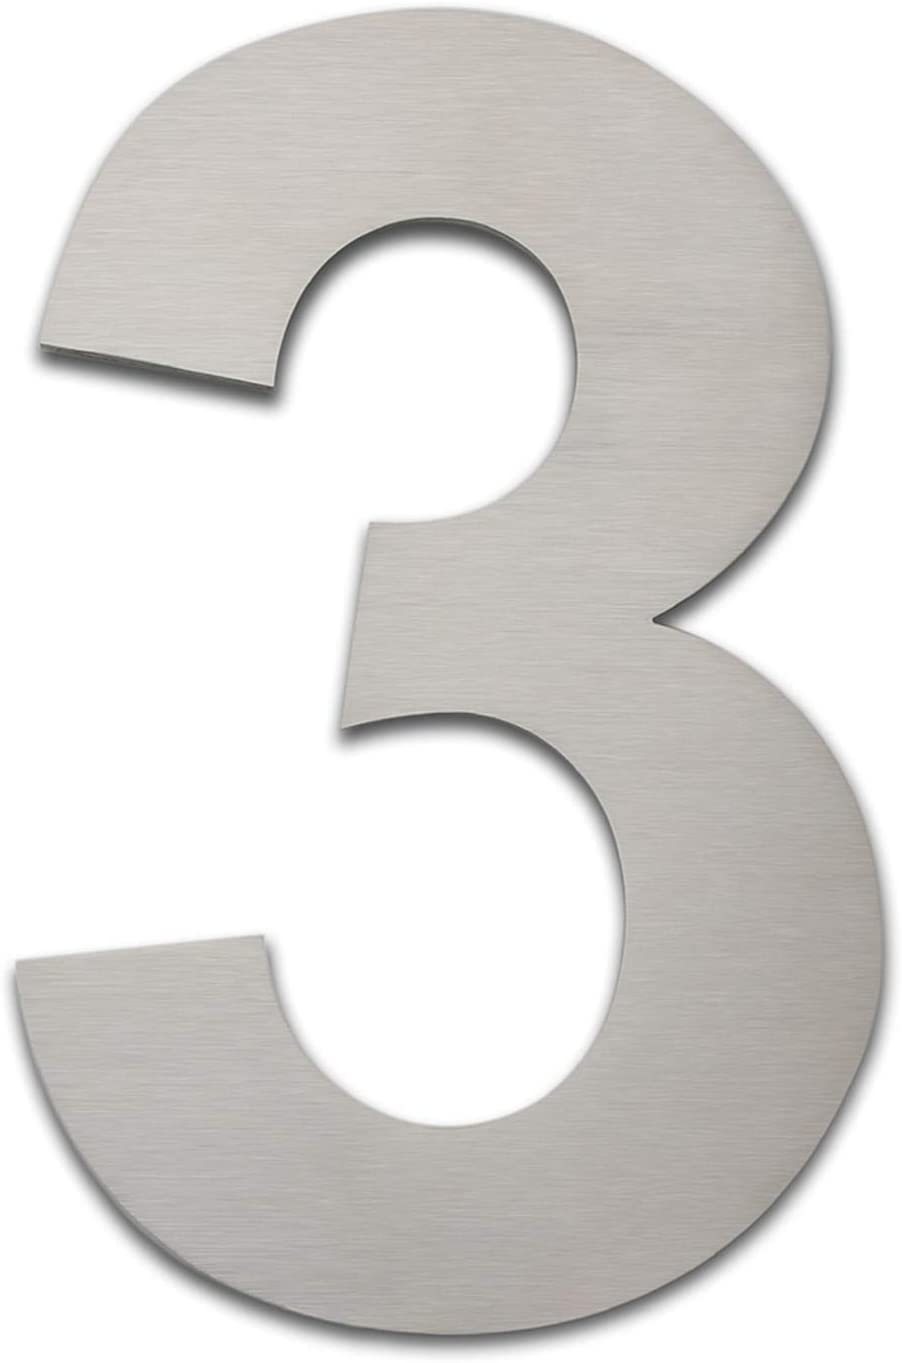 Brushed Modern House Number -8 Inch 203mm Height, Made of Solid